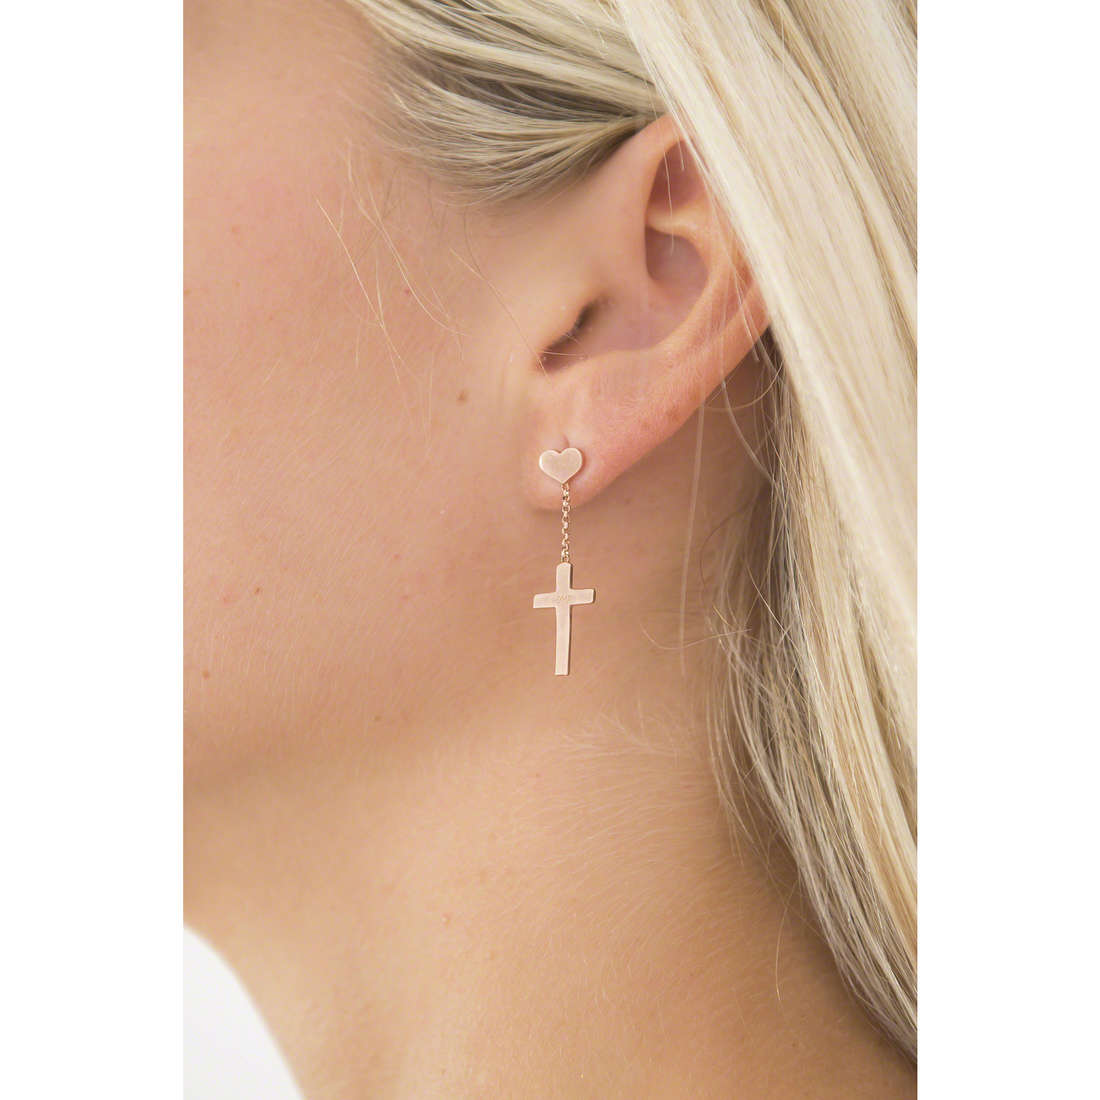 Amen earrings woman ORCHR indosso